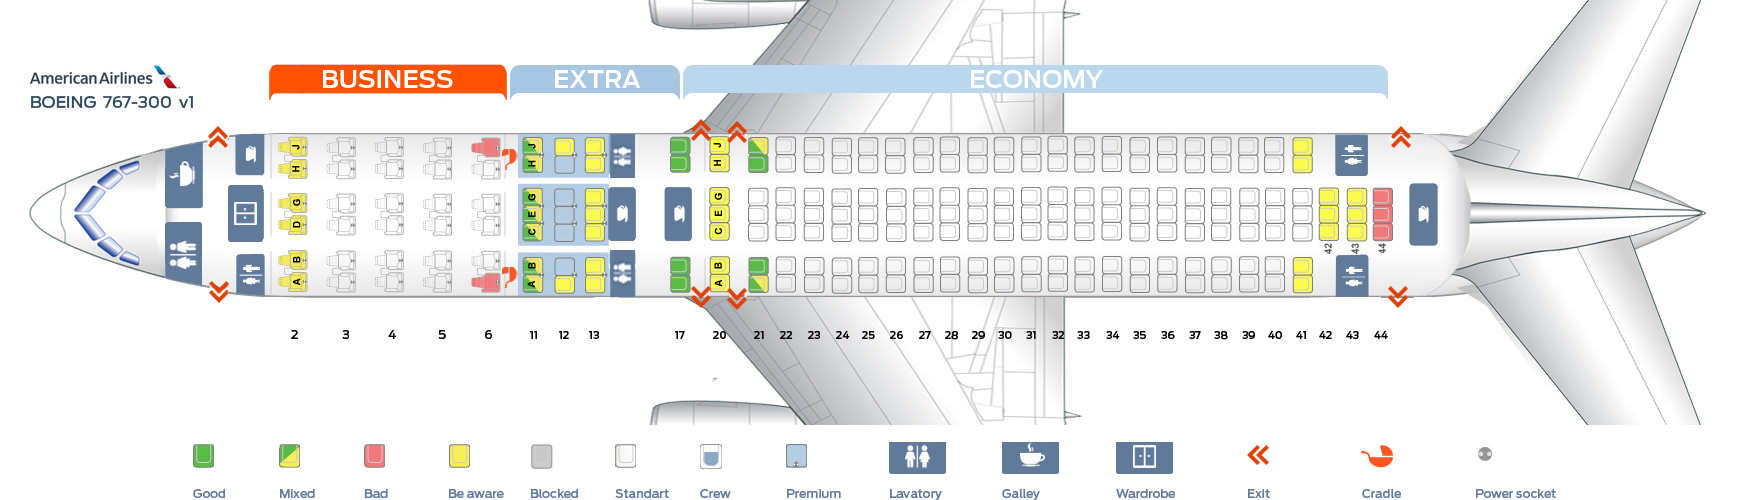 Aa Seat Map Seat map Boeing 767 300 American Airlines. Best seats in the plane